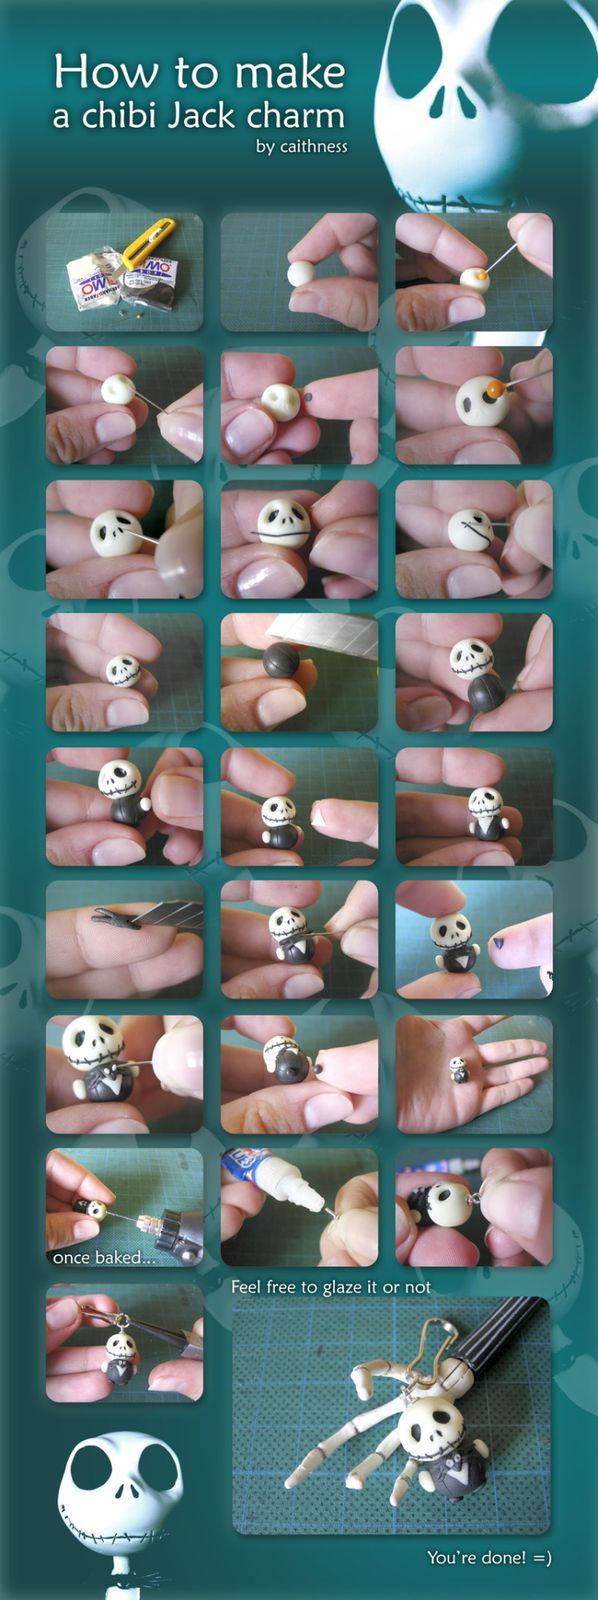 How_to_make_a_chibi_jack_charm_by_caithness155.jpg